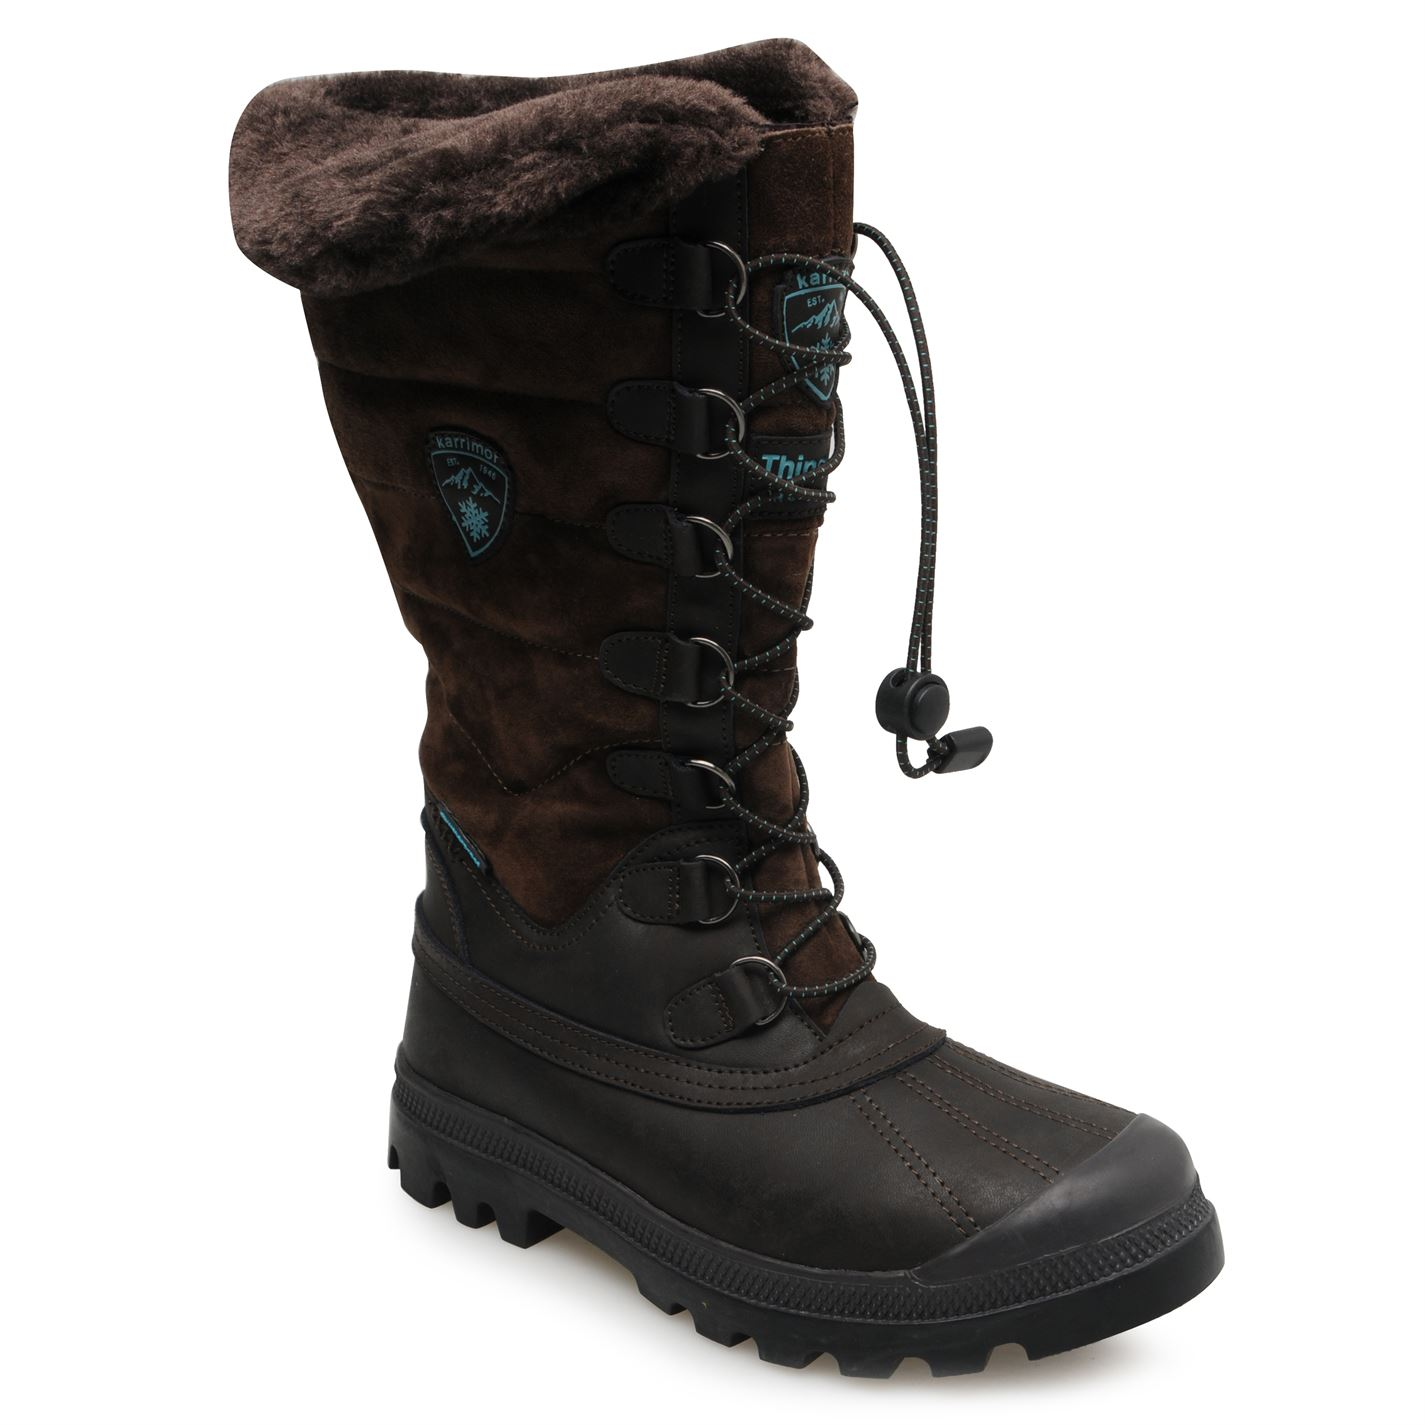 Clearance Snow Boots I0kYIkV2